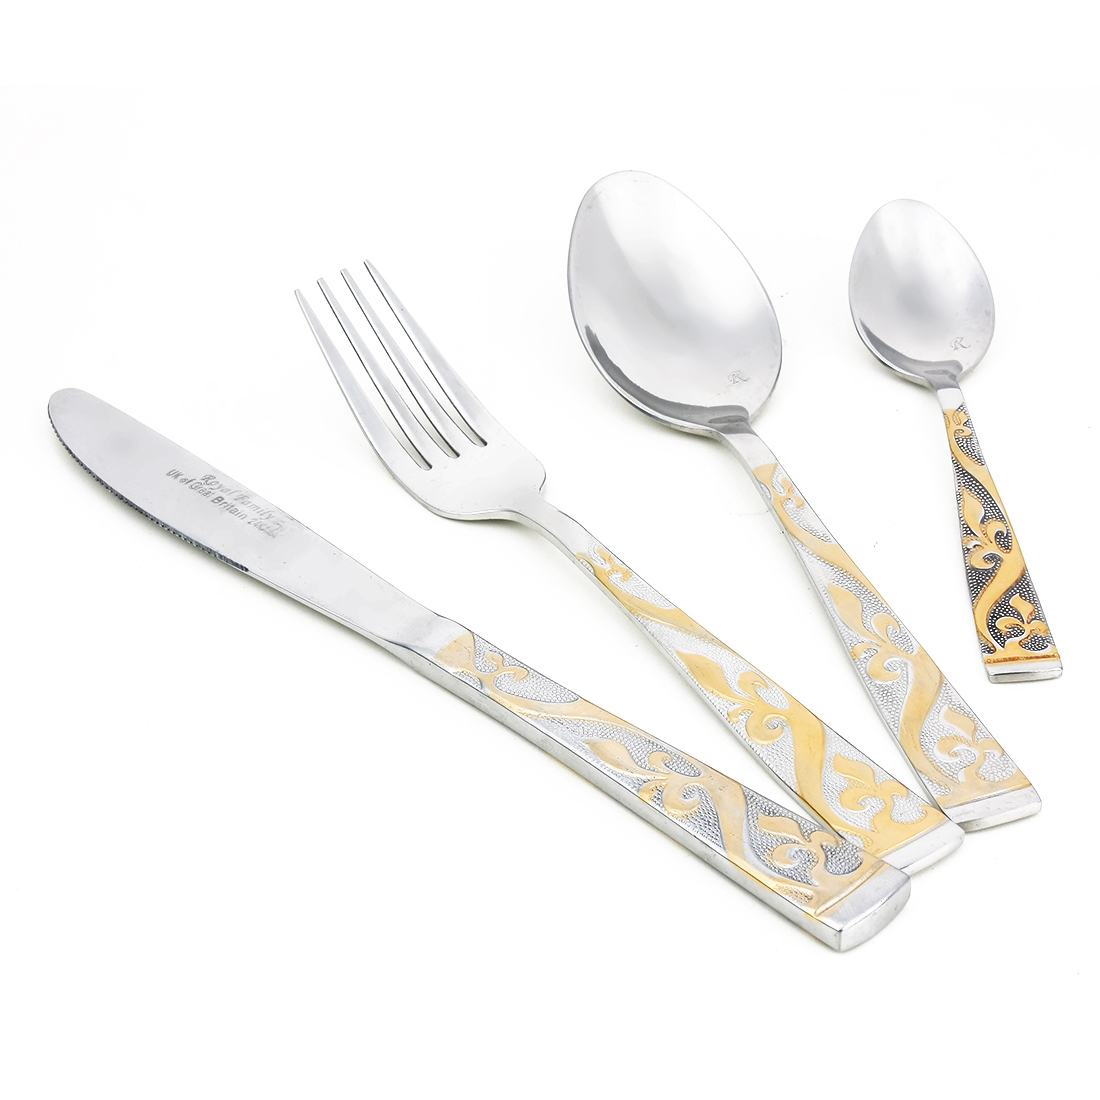 Casa-J Home Family Flatware Cutlery Set, 18/10 Stainless Steel, 4 Pieces Service for 1